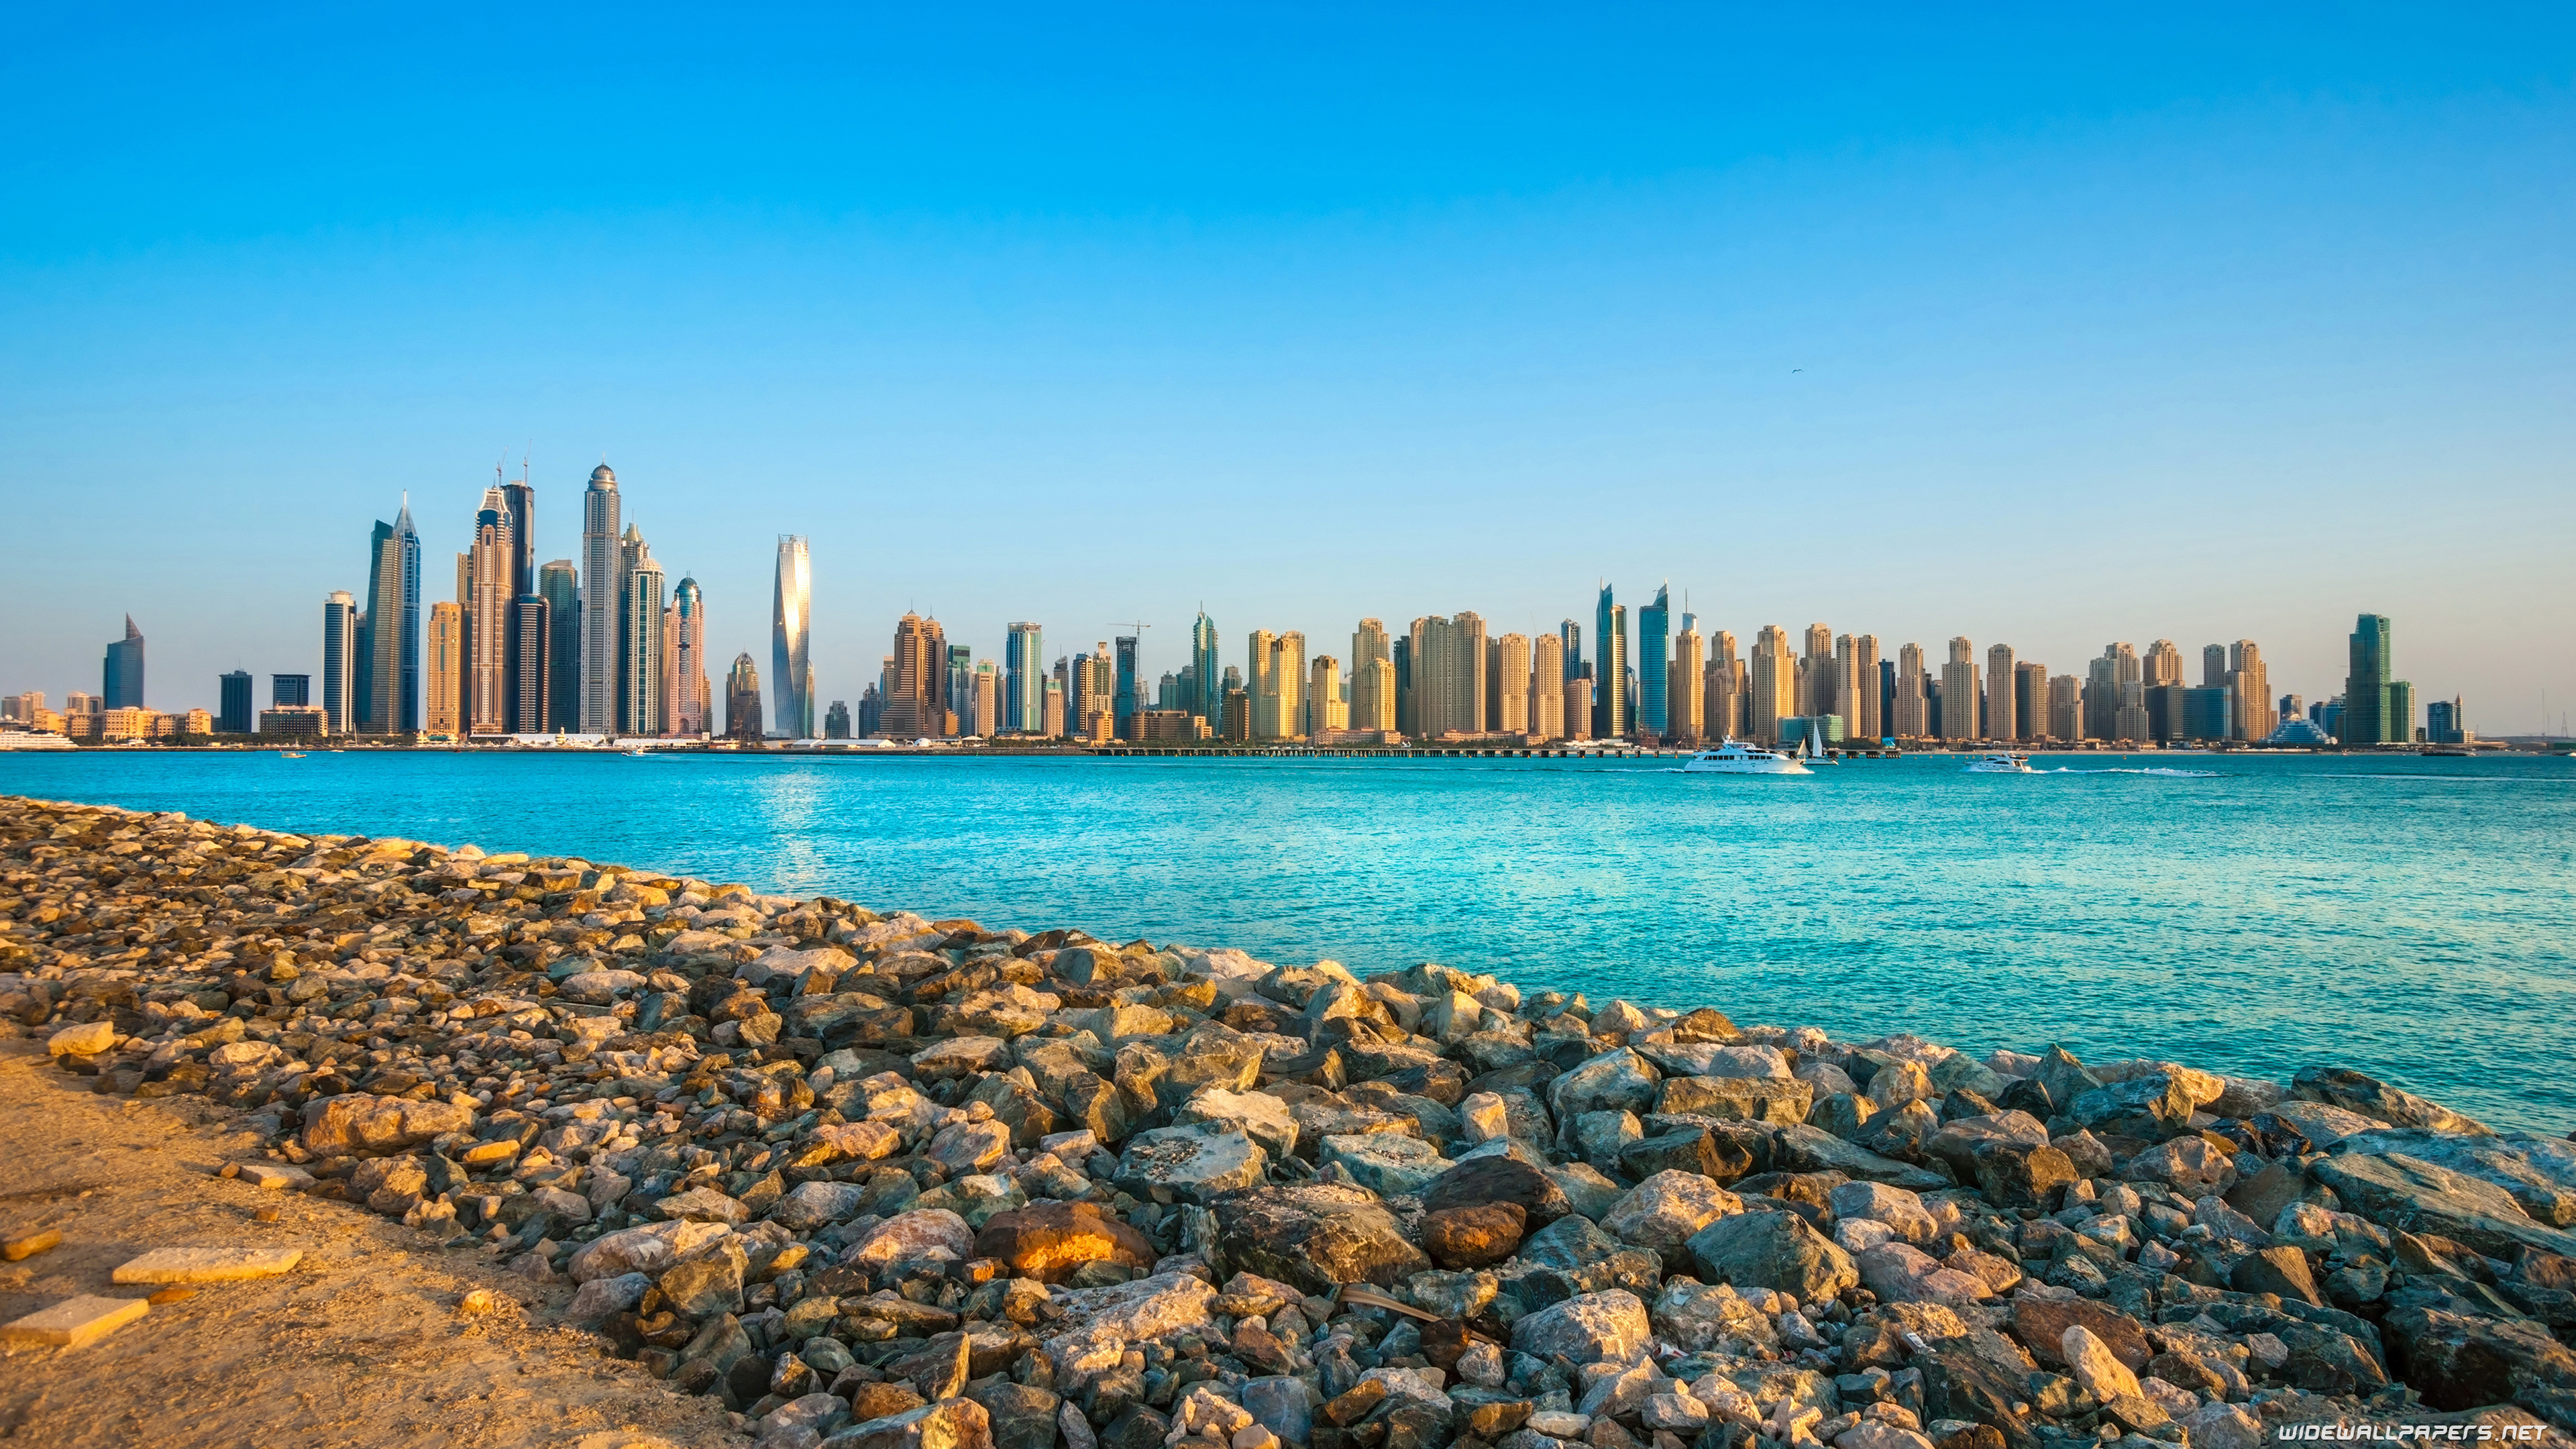 Dubai city desktop wallpapers 4k ultra hd for Immagini desktop 4k